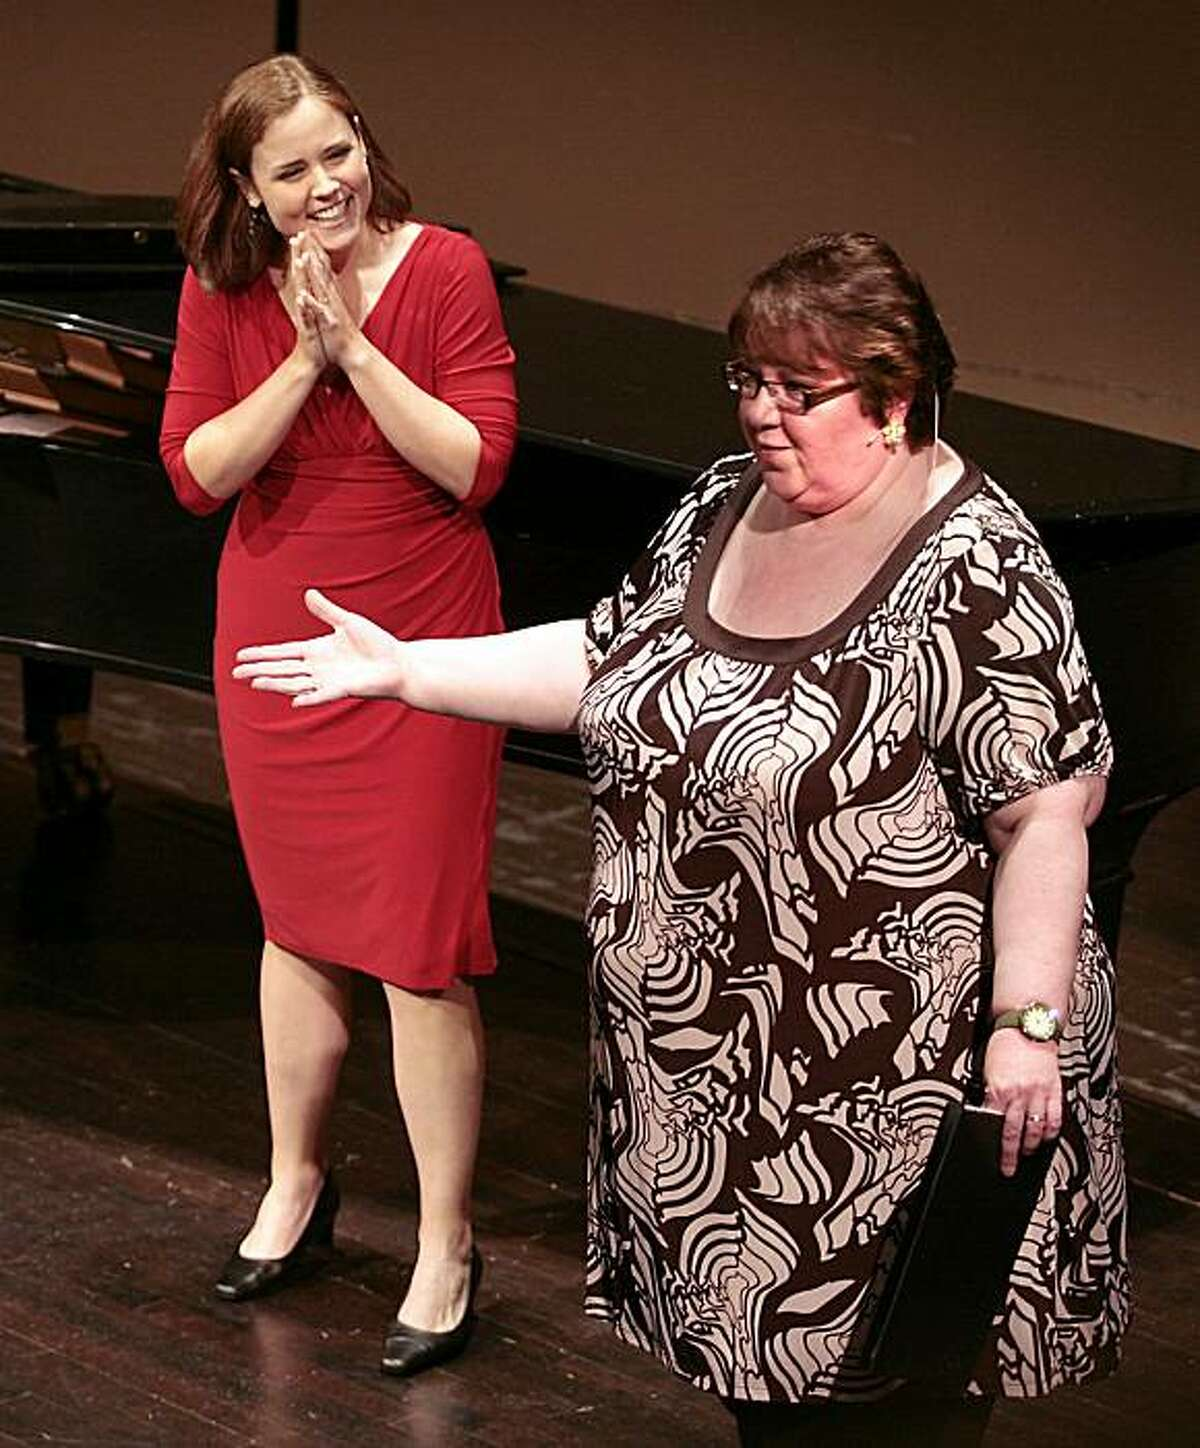 Singer Robin Flynn works with Jane Eaglen in a master class at the Merola Opera program at the Herbst Theatre in San Francisco on Thursday, July 8th, 2010.